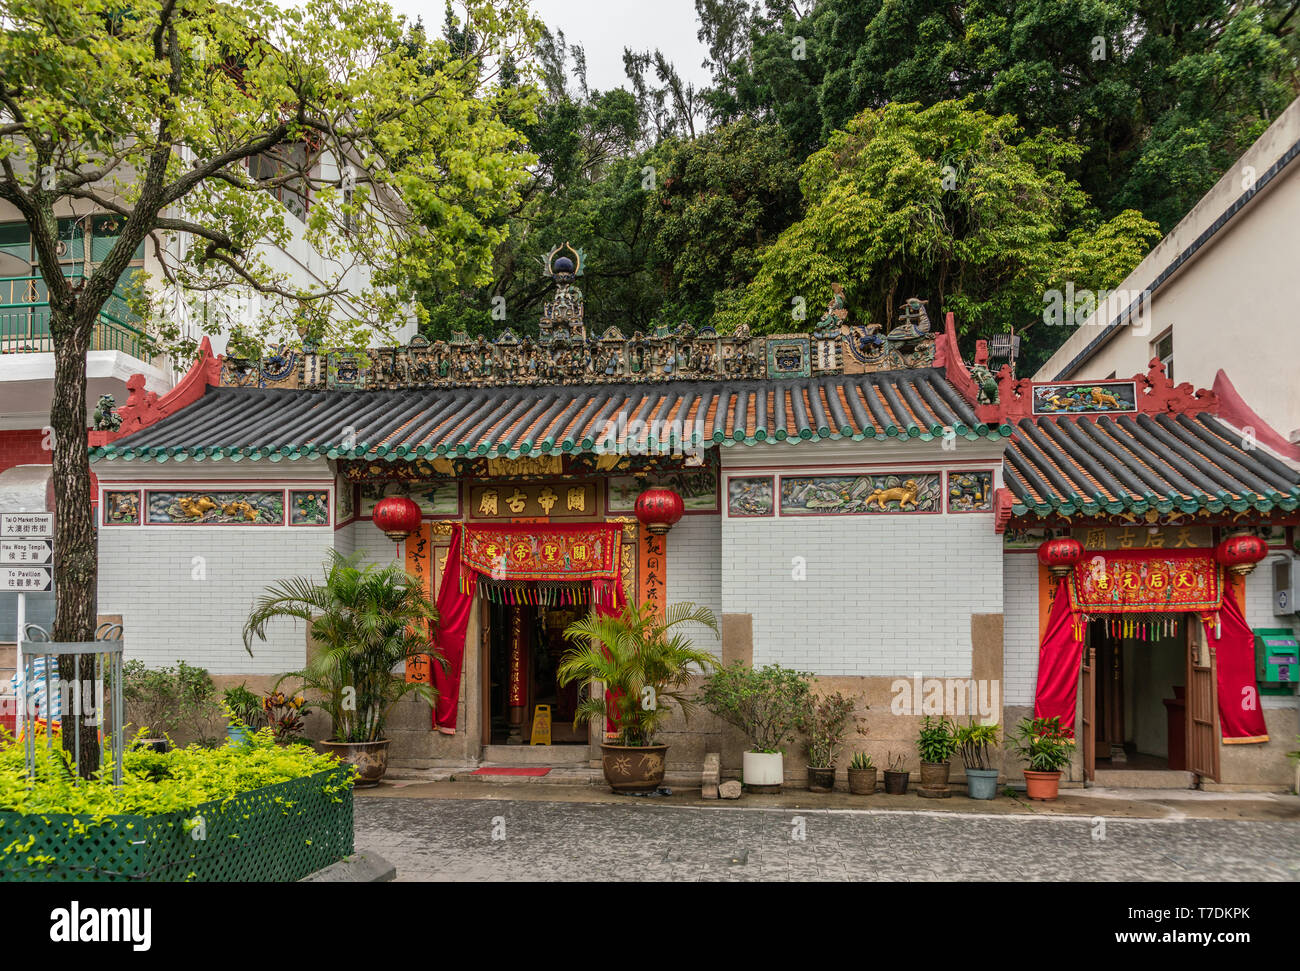 Hong Kong, China - March 7, 2019: Tai O Fishing village. Frontal view of Kwan Tai Taoist temple with white wall and red doorways. Extensive roof decor - Stock Image